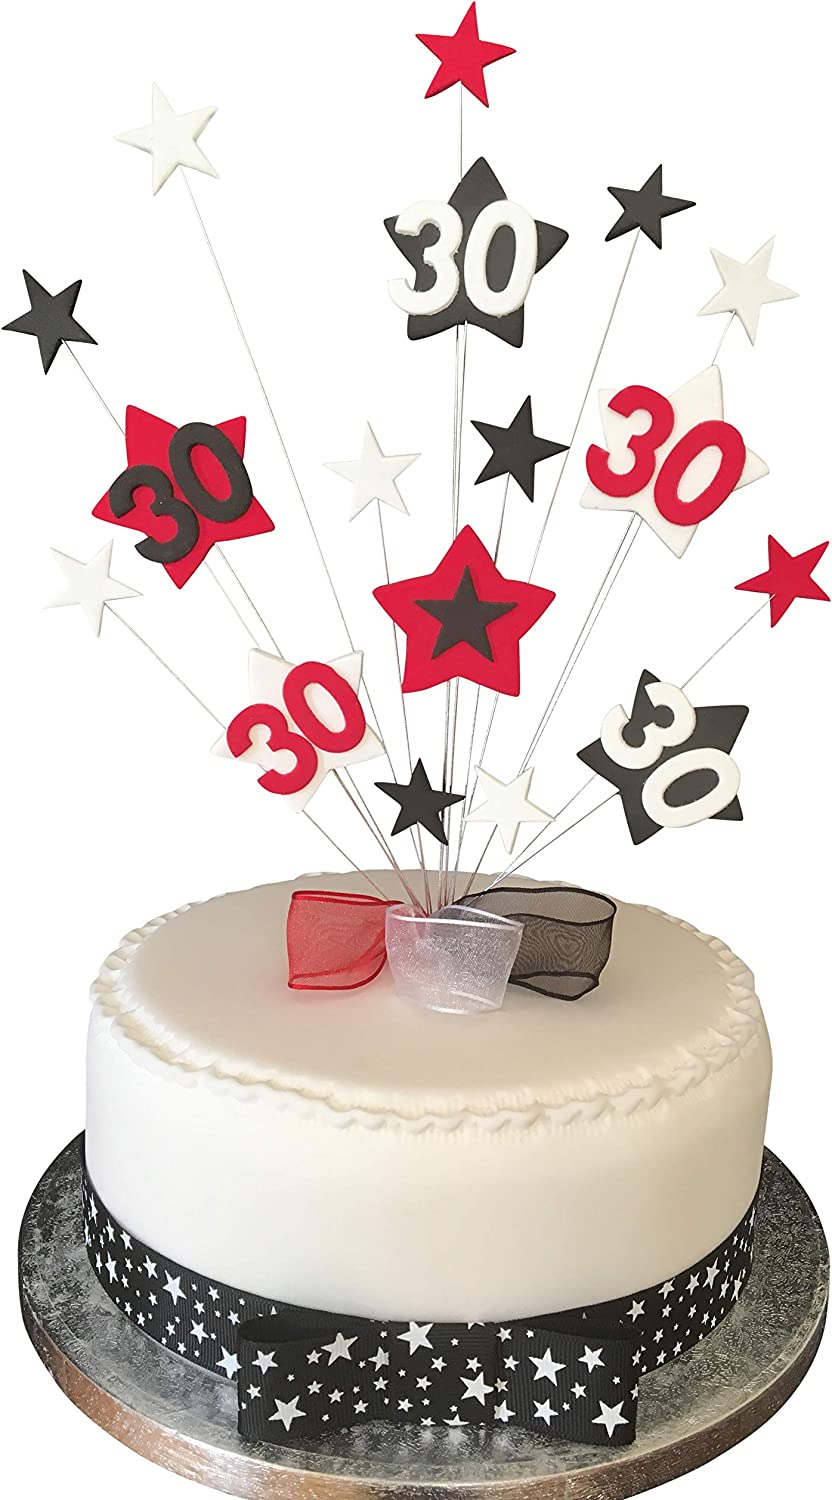 Pleasant 30Th Birthday Cake Topper Red Black And White Stars Plus 1 X Funny Birthday Cards Online Inifodamsfinfo